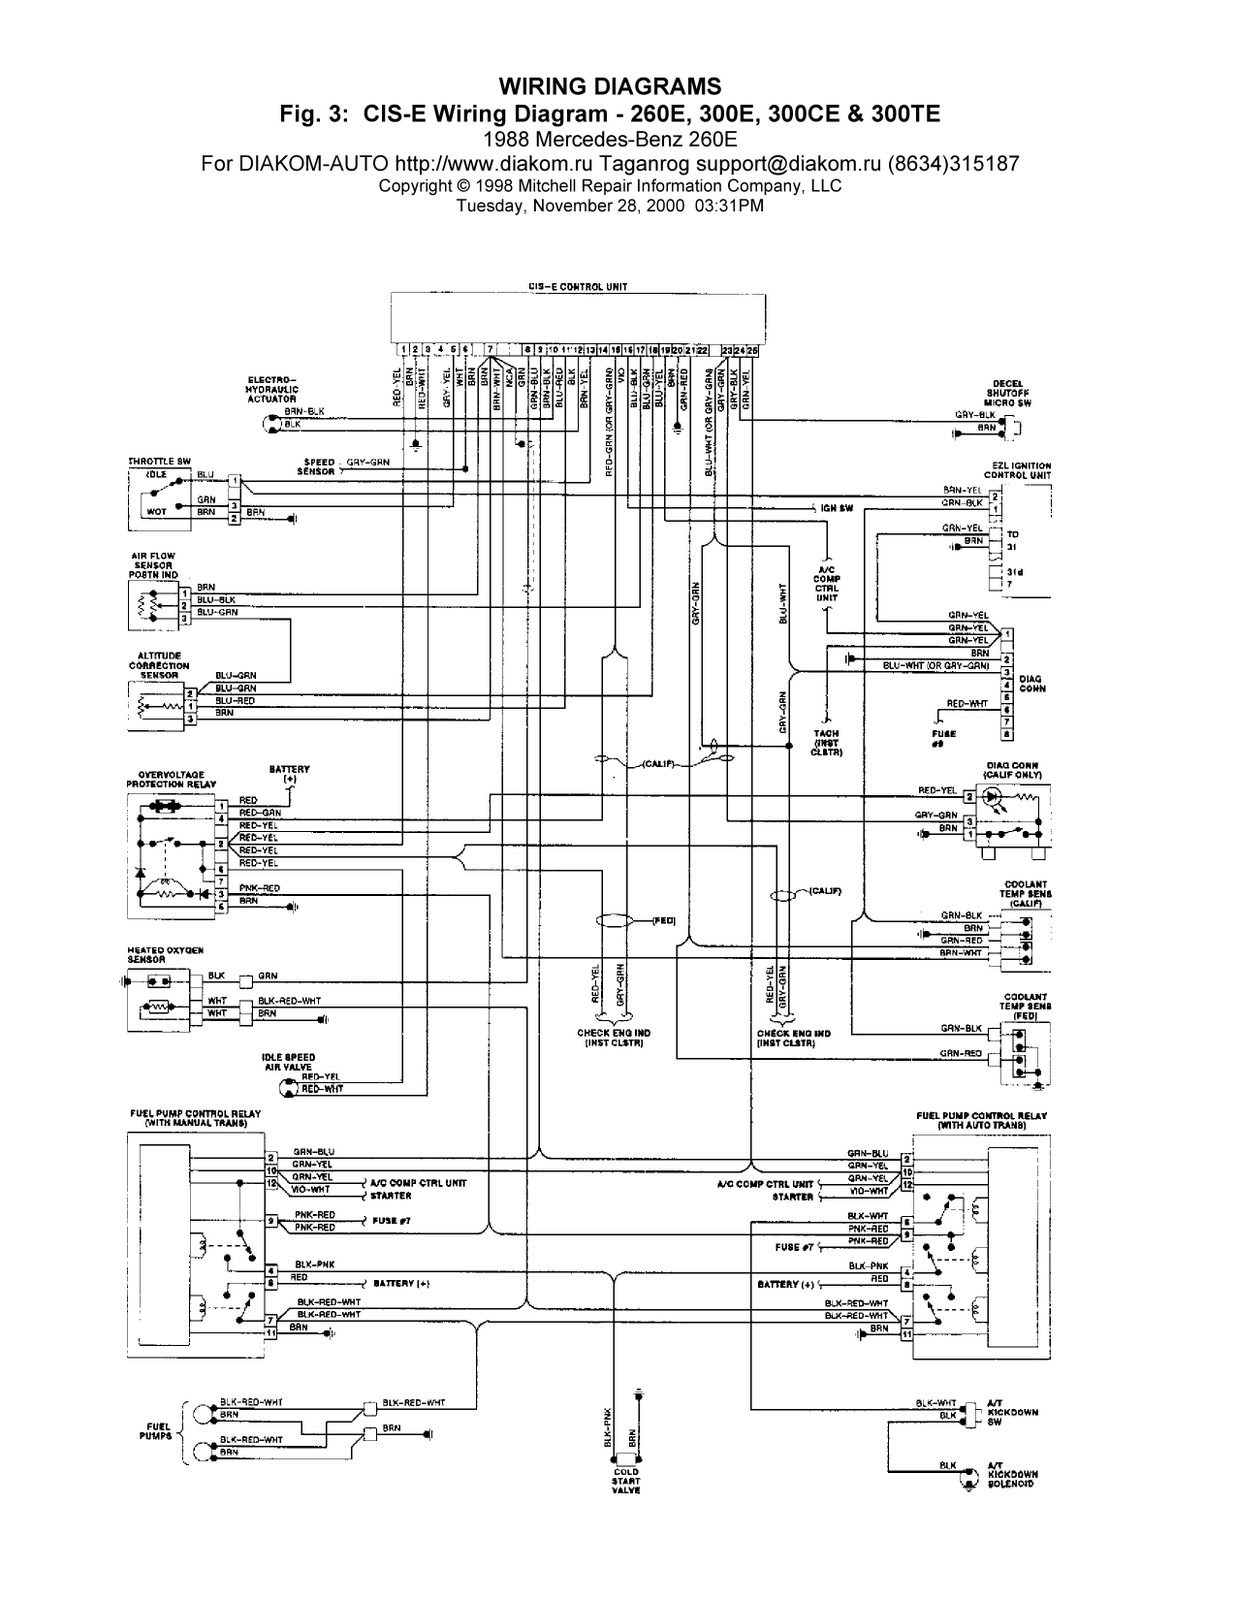 2001 ml320 fuse diagram wiring diagram g92000 benz ml320 fuse diagram wiring diagrams cks 07 mercedes [ 1236 x 1600 Pixel ]